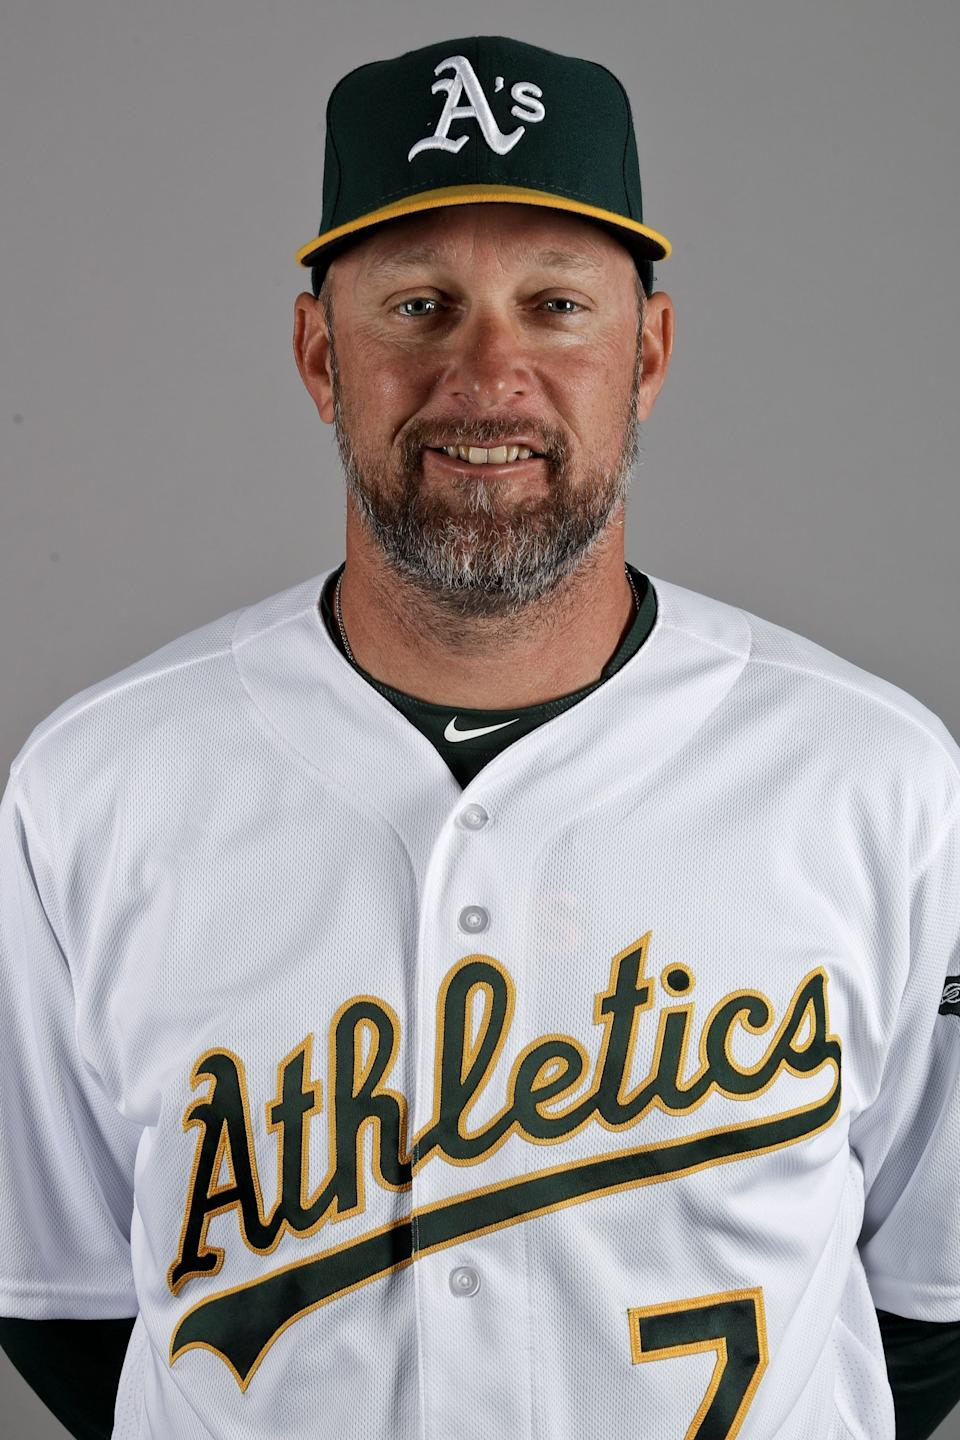 Former Boston Red Sox outfielder Mark Kotsay, who is currently the quality control coach for the Oakland Athletics, could be a candidate for the position of Red Sox manager after the Red Sox fired Ron Roenicke on Sunday.